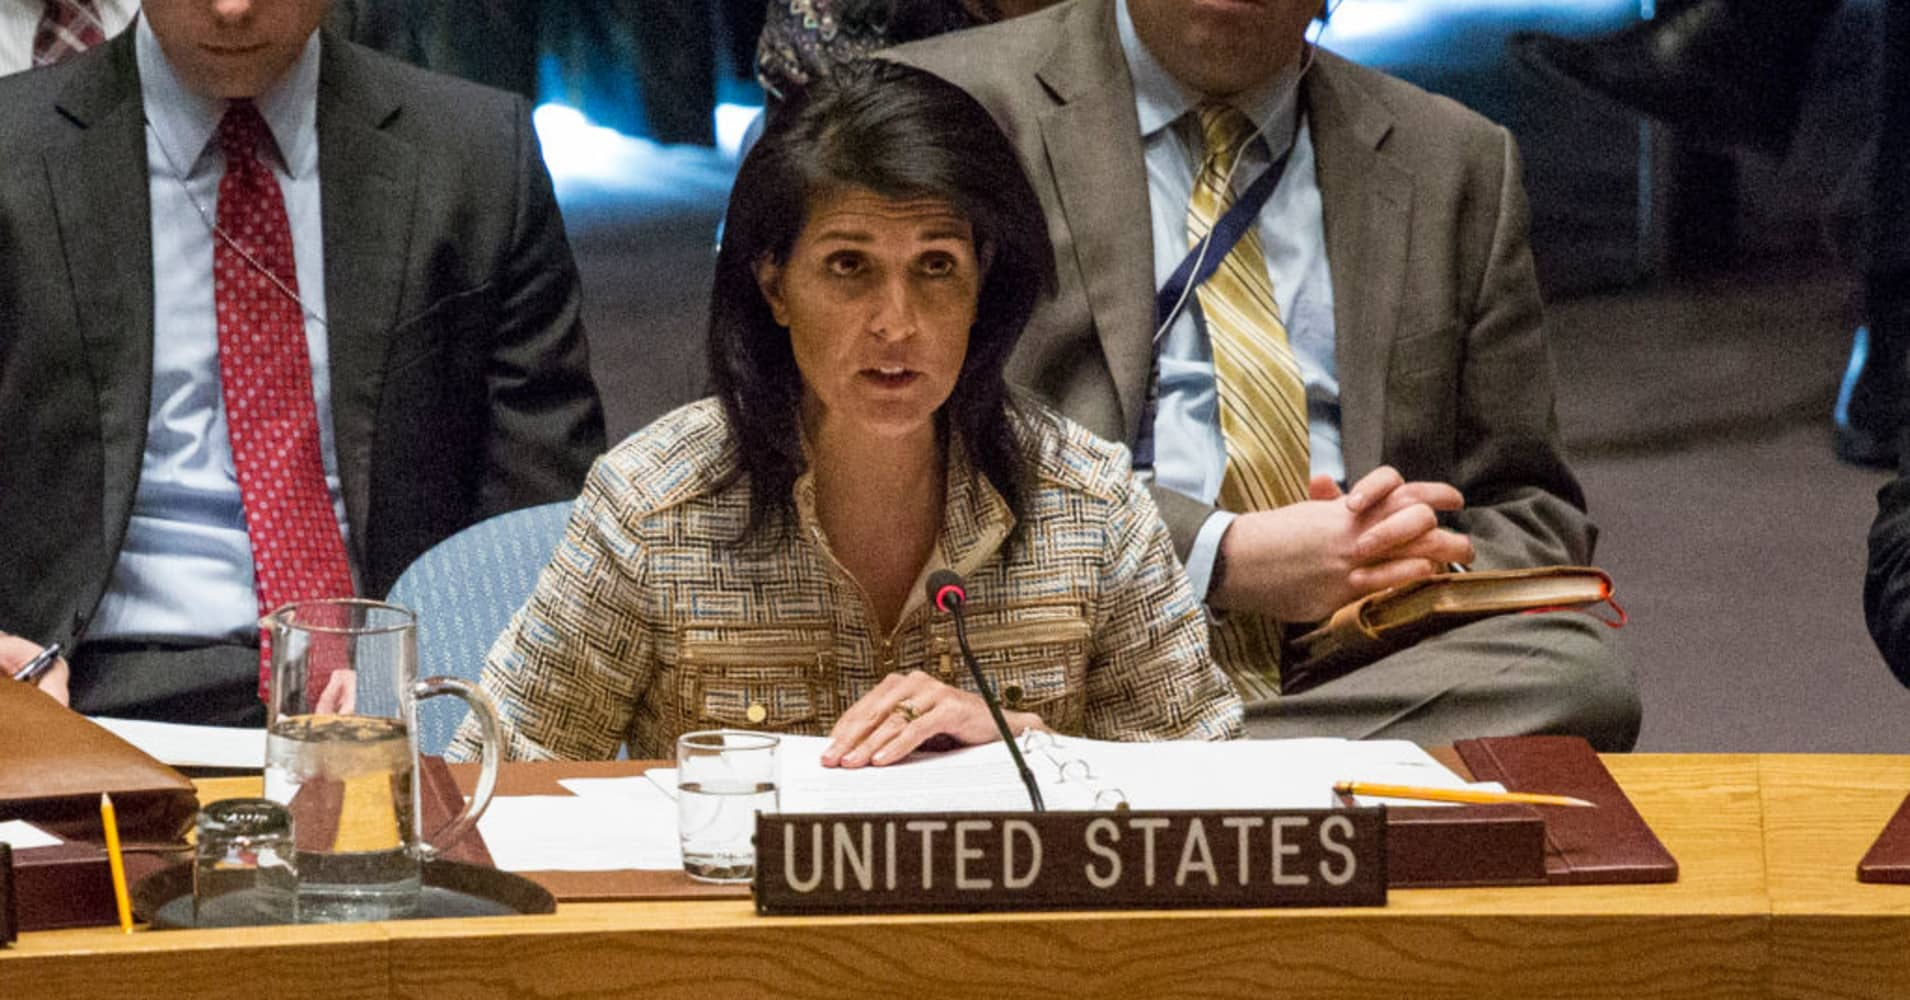 UN Ambassador Nikki Haley: 'We should never trust Russia'